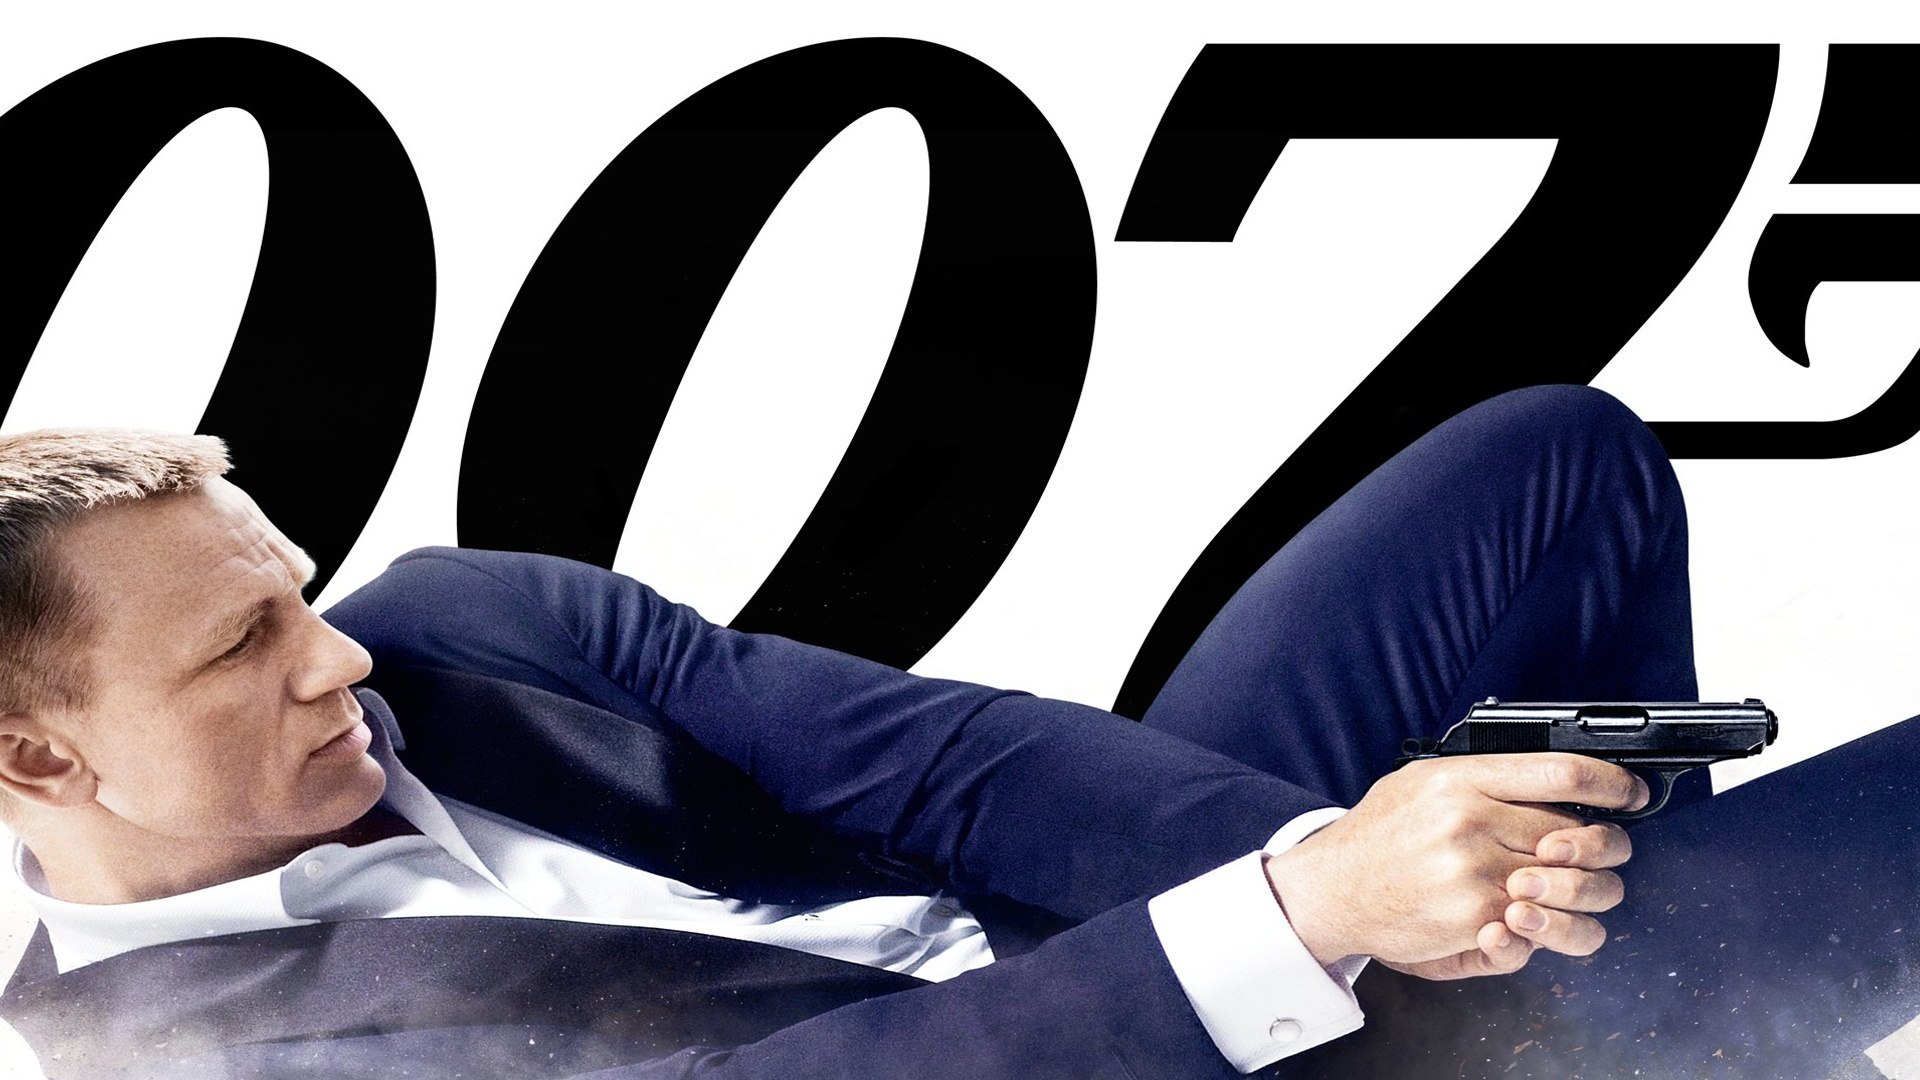 Daniel Craig, Pistolet, James Bond, Agent 007